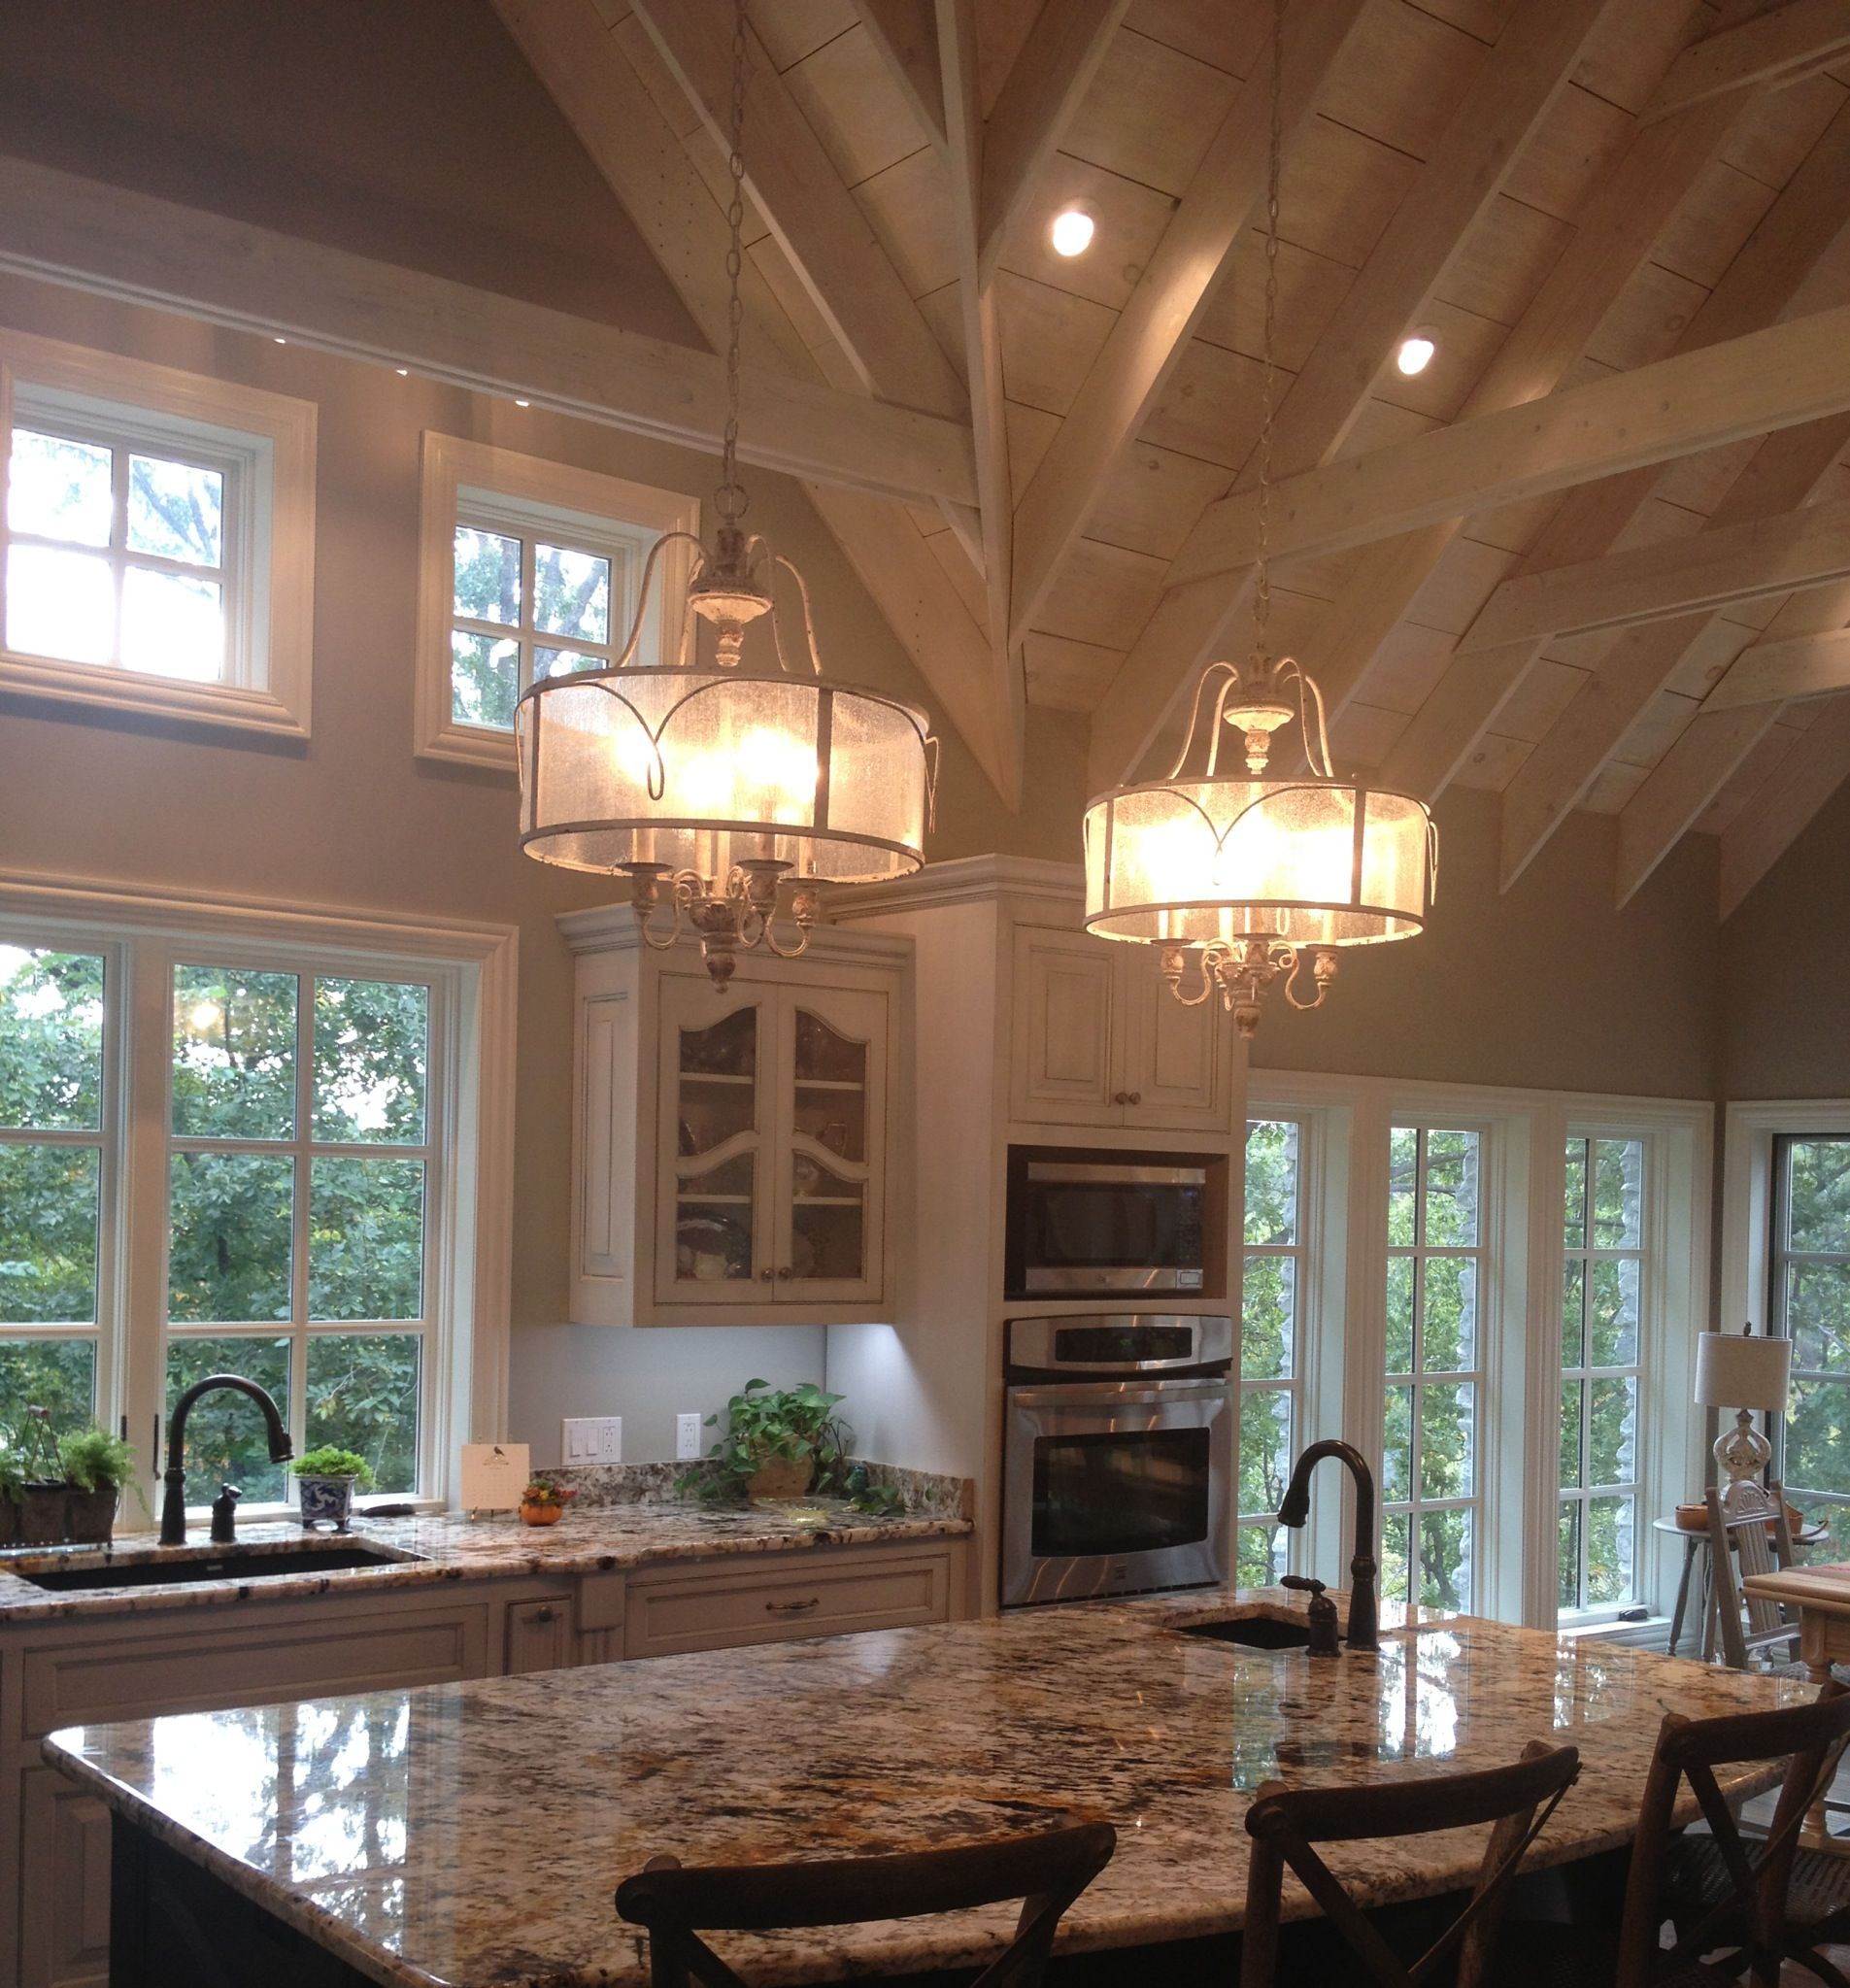 French Country Gray Glazed Cabinets White Washed Vaulted Ceiling Vaulted Ceiling Kitchen Country Kitchen Decor Kitchen Soffit